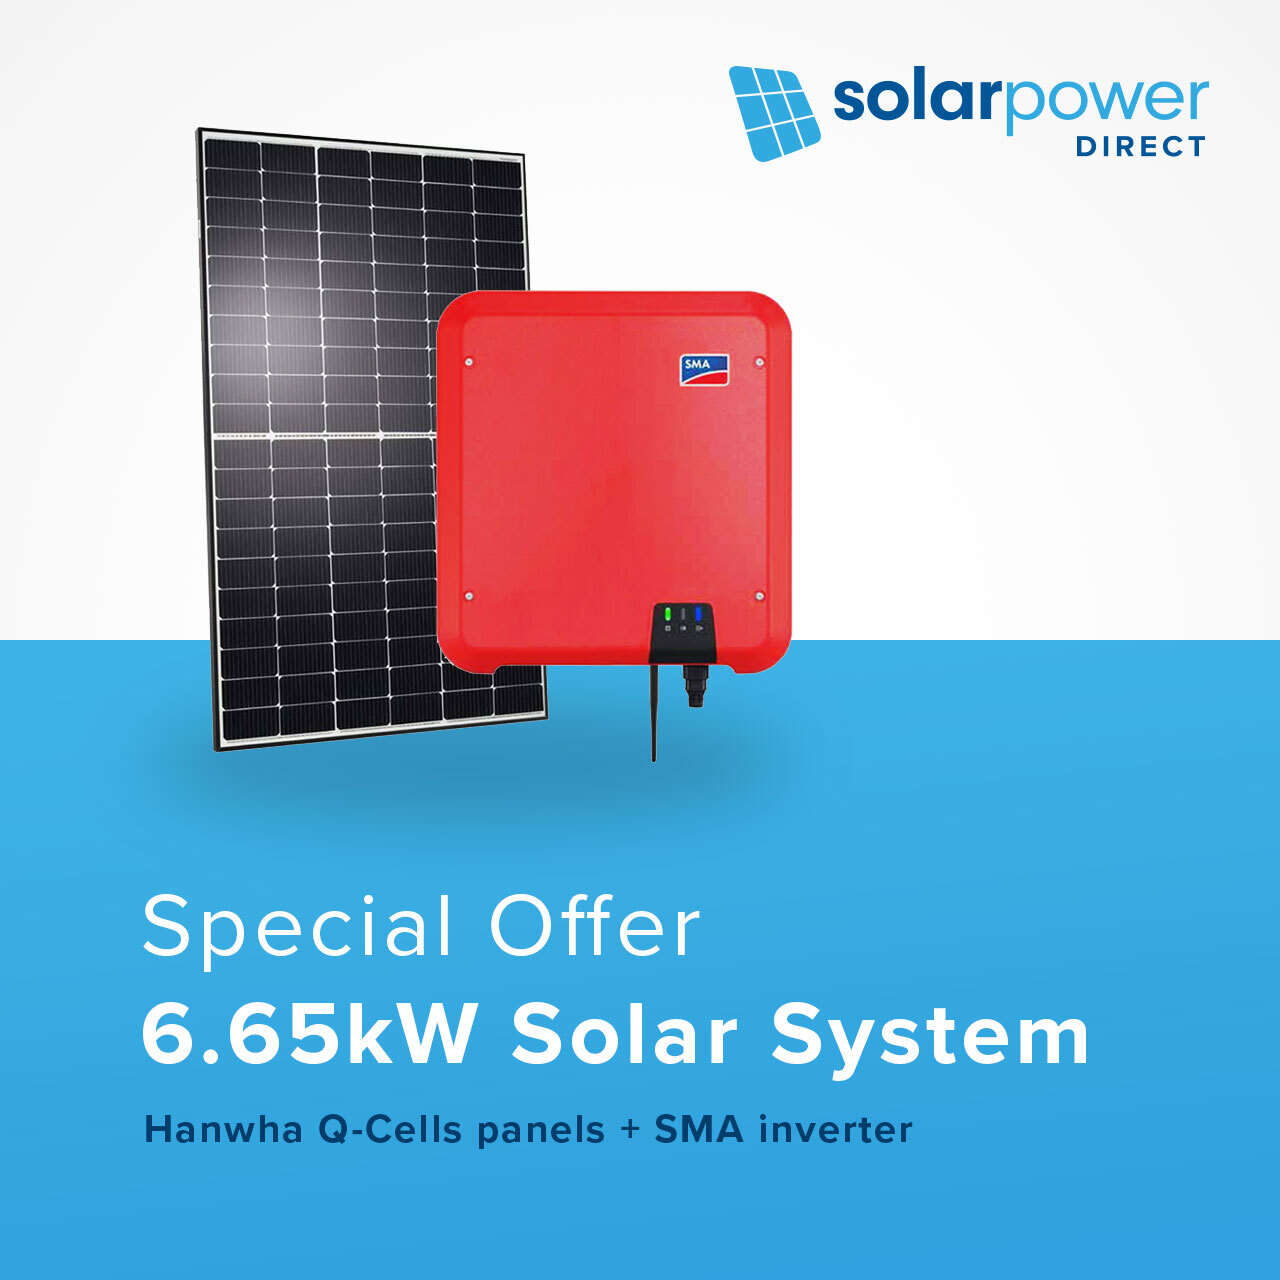 6.65kW solar system for just $5,299